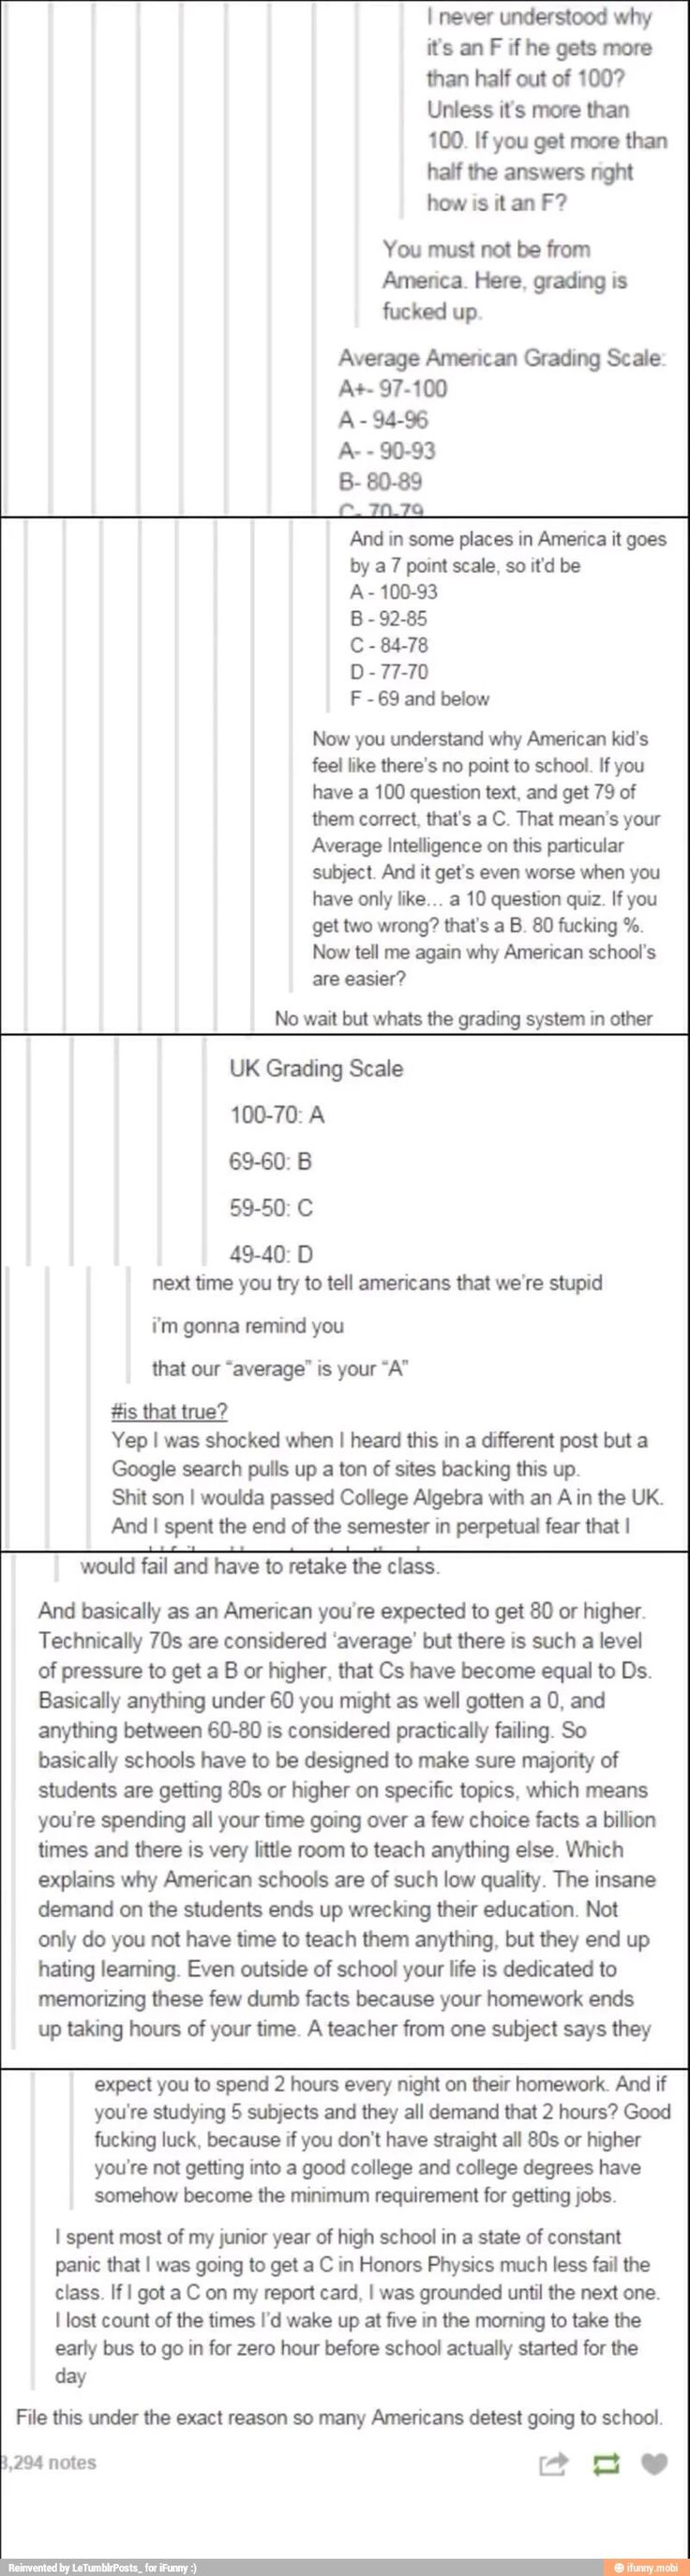 The american grading system is flat-out stupid. like, you miss 30 points? That's considered the same thing as an F in my school 9 it's not graded as that but it feels like it is, to everyone). It definitely bothers me that the majority of scores you can get are an F. the possible amount of scores. F. It makes everyone that I know so worried about grades and hw and shit. fuck this.